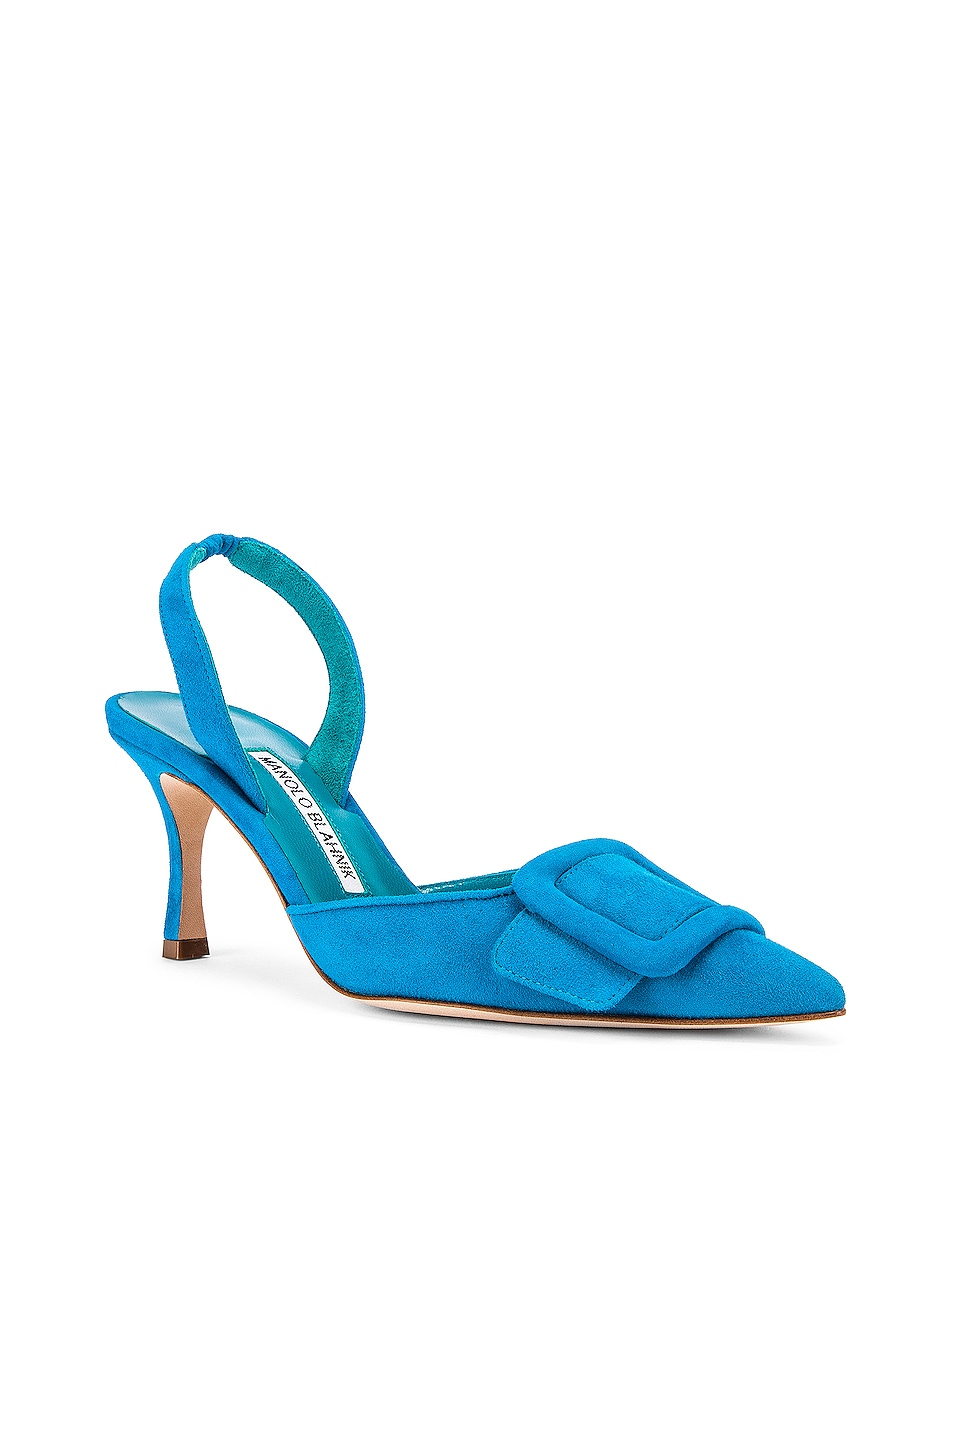 Image 2 of Manolo Blahnik Suede May 70 Slingback in Asiago Turquoise